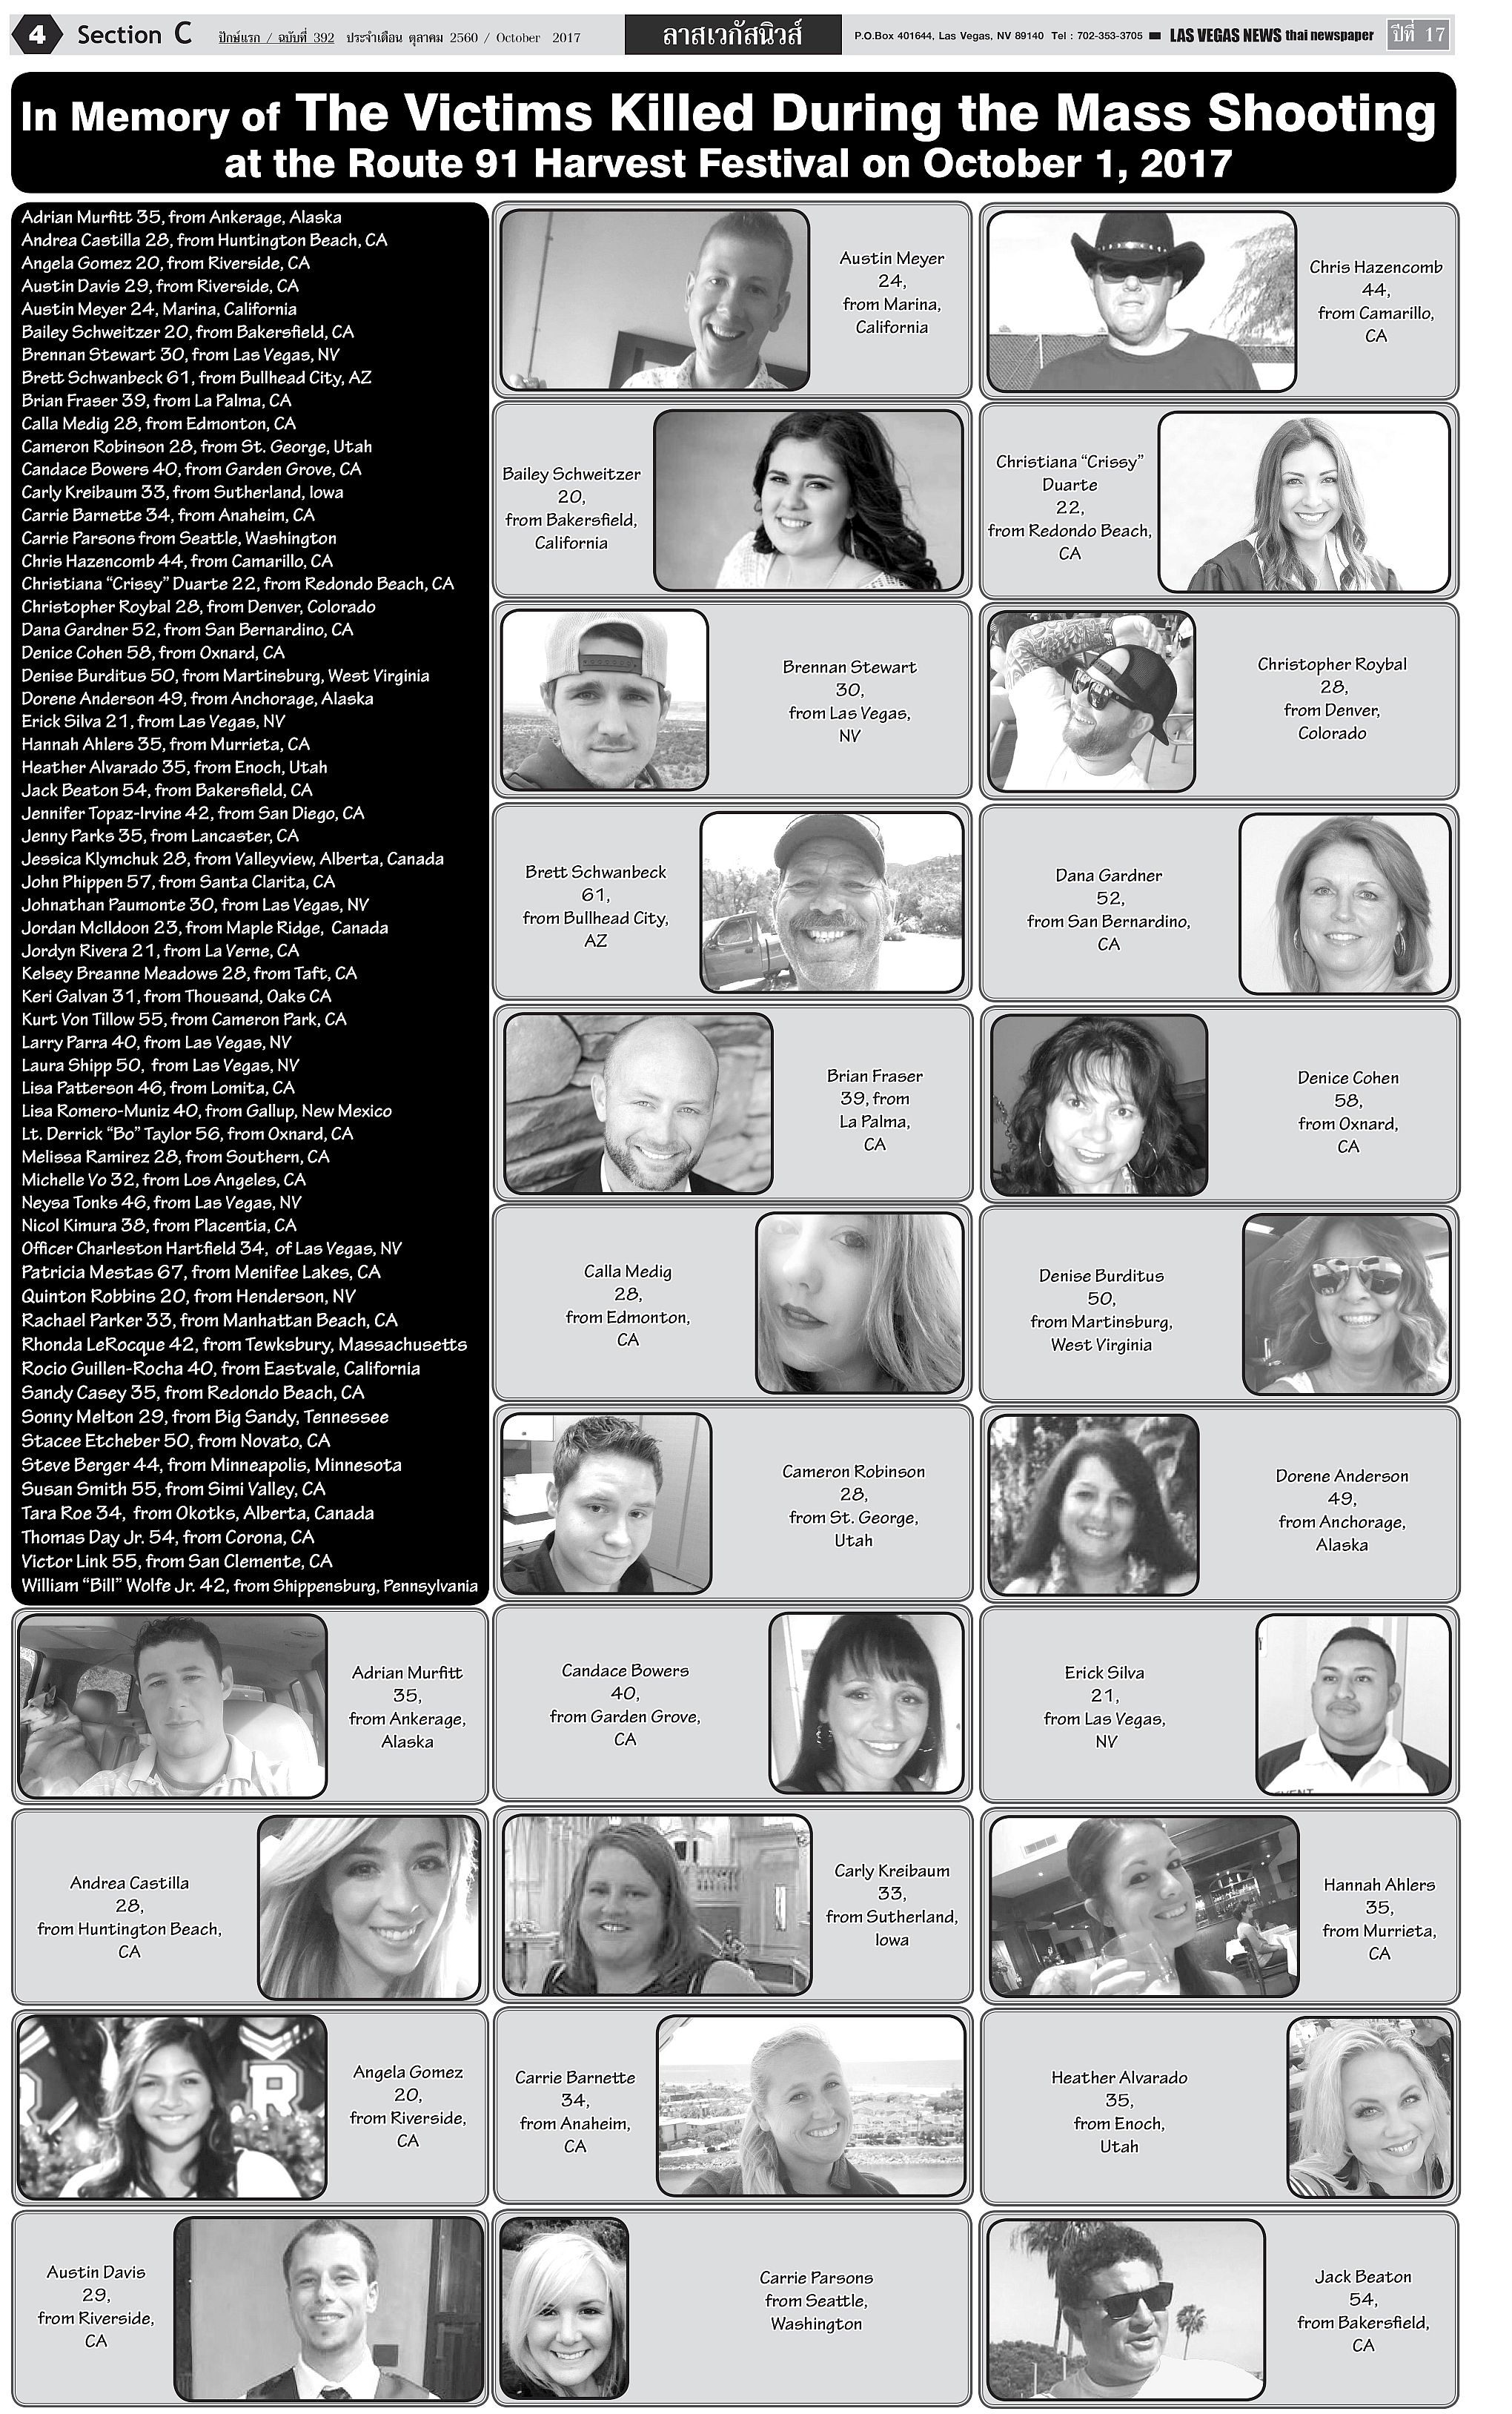 In Memory of The Victims Killed During the Mass Shooting at the Route 91 Harvest Festival on October 1, 2017